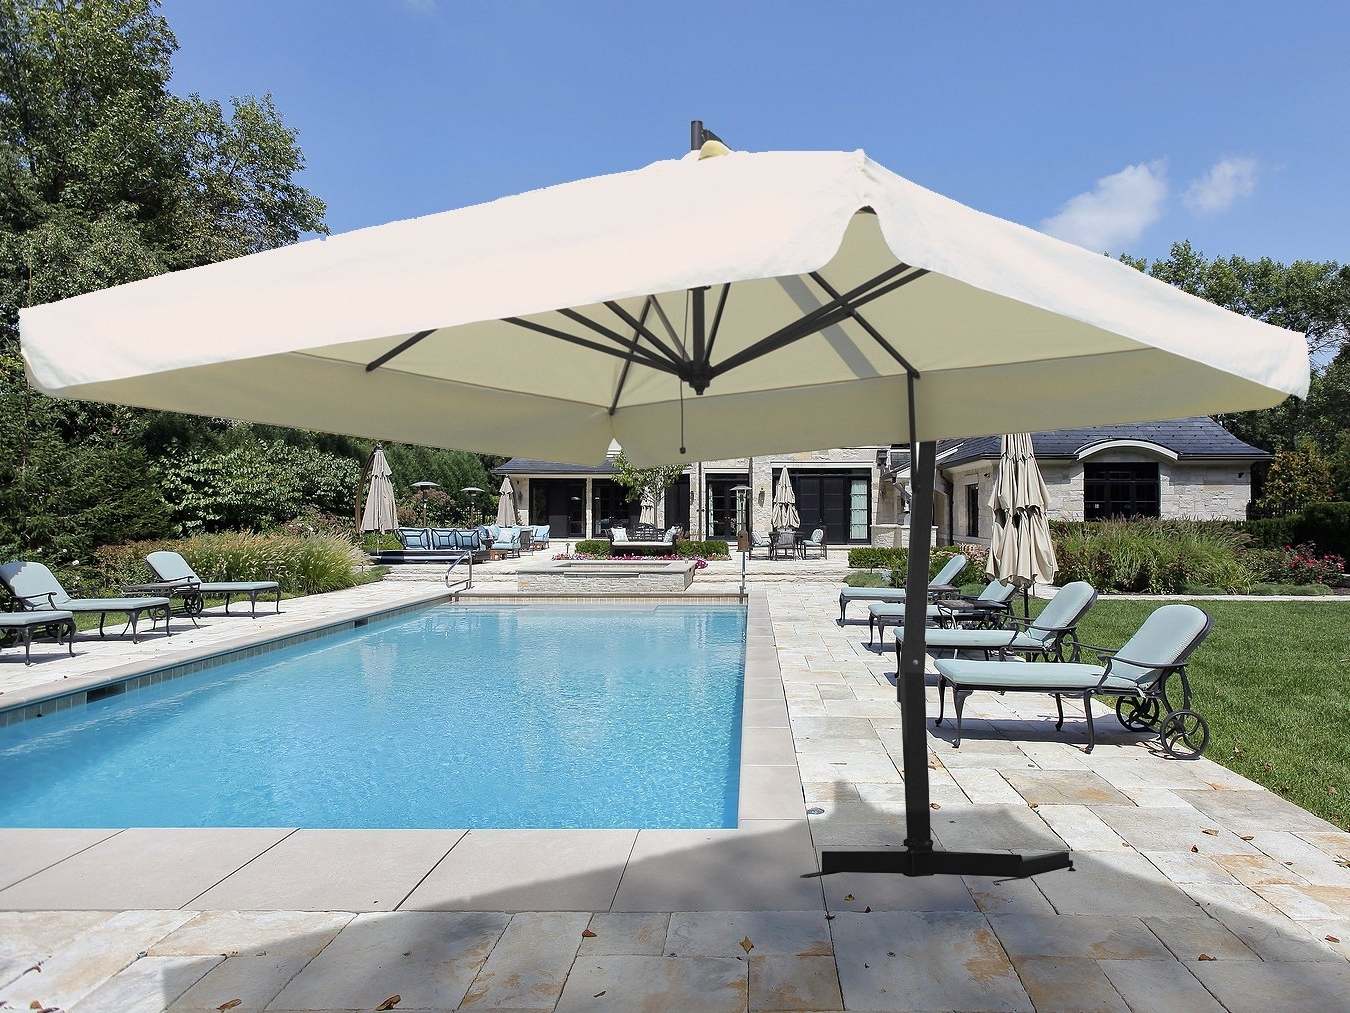 Outdoor Patio Umbrellas Throughout Most Recently Released Furniture: California Umbrella Sunbrella Aluminum Tilt Patio (View 18 of 20)